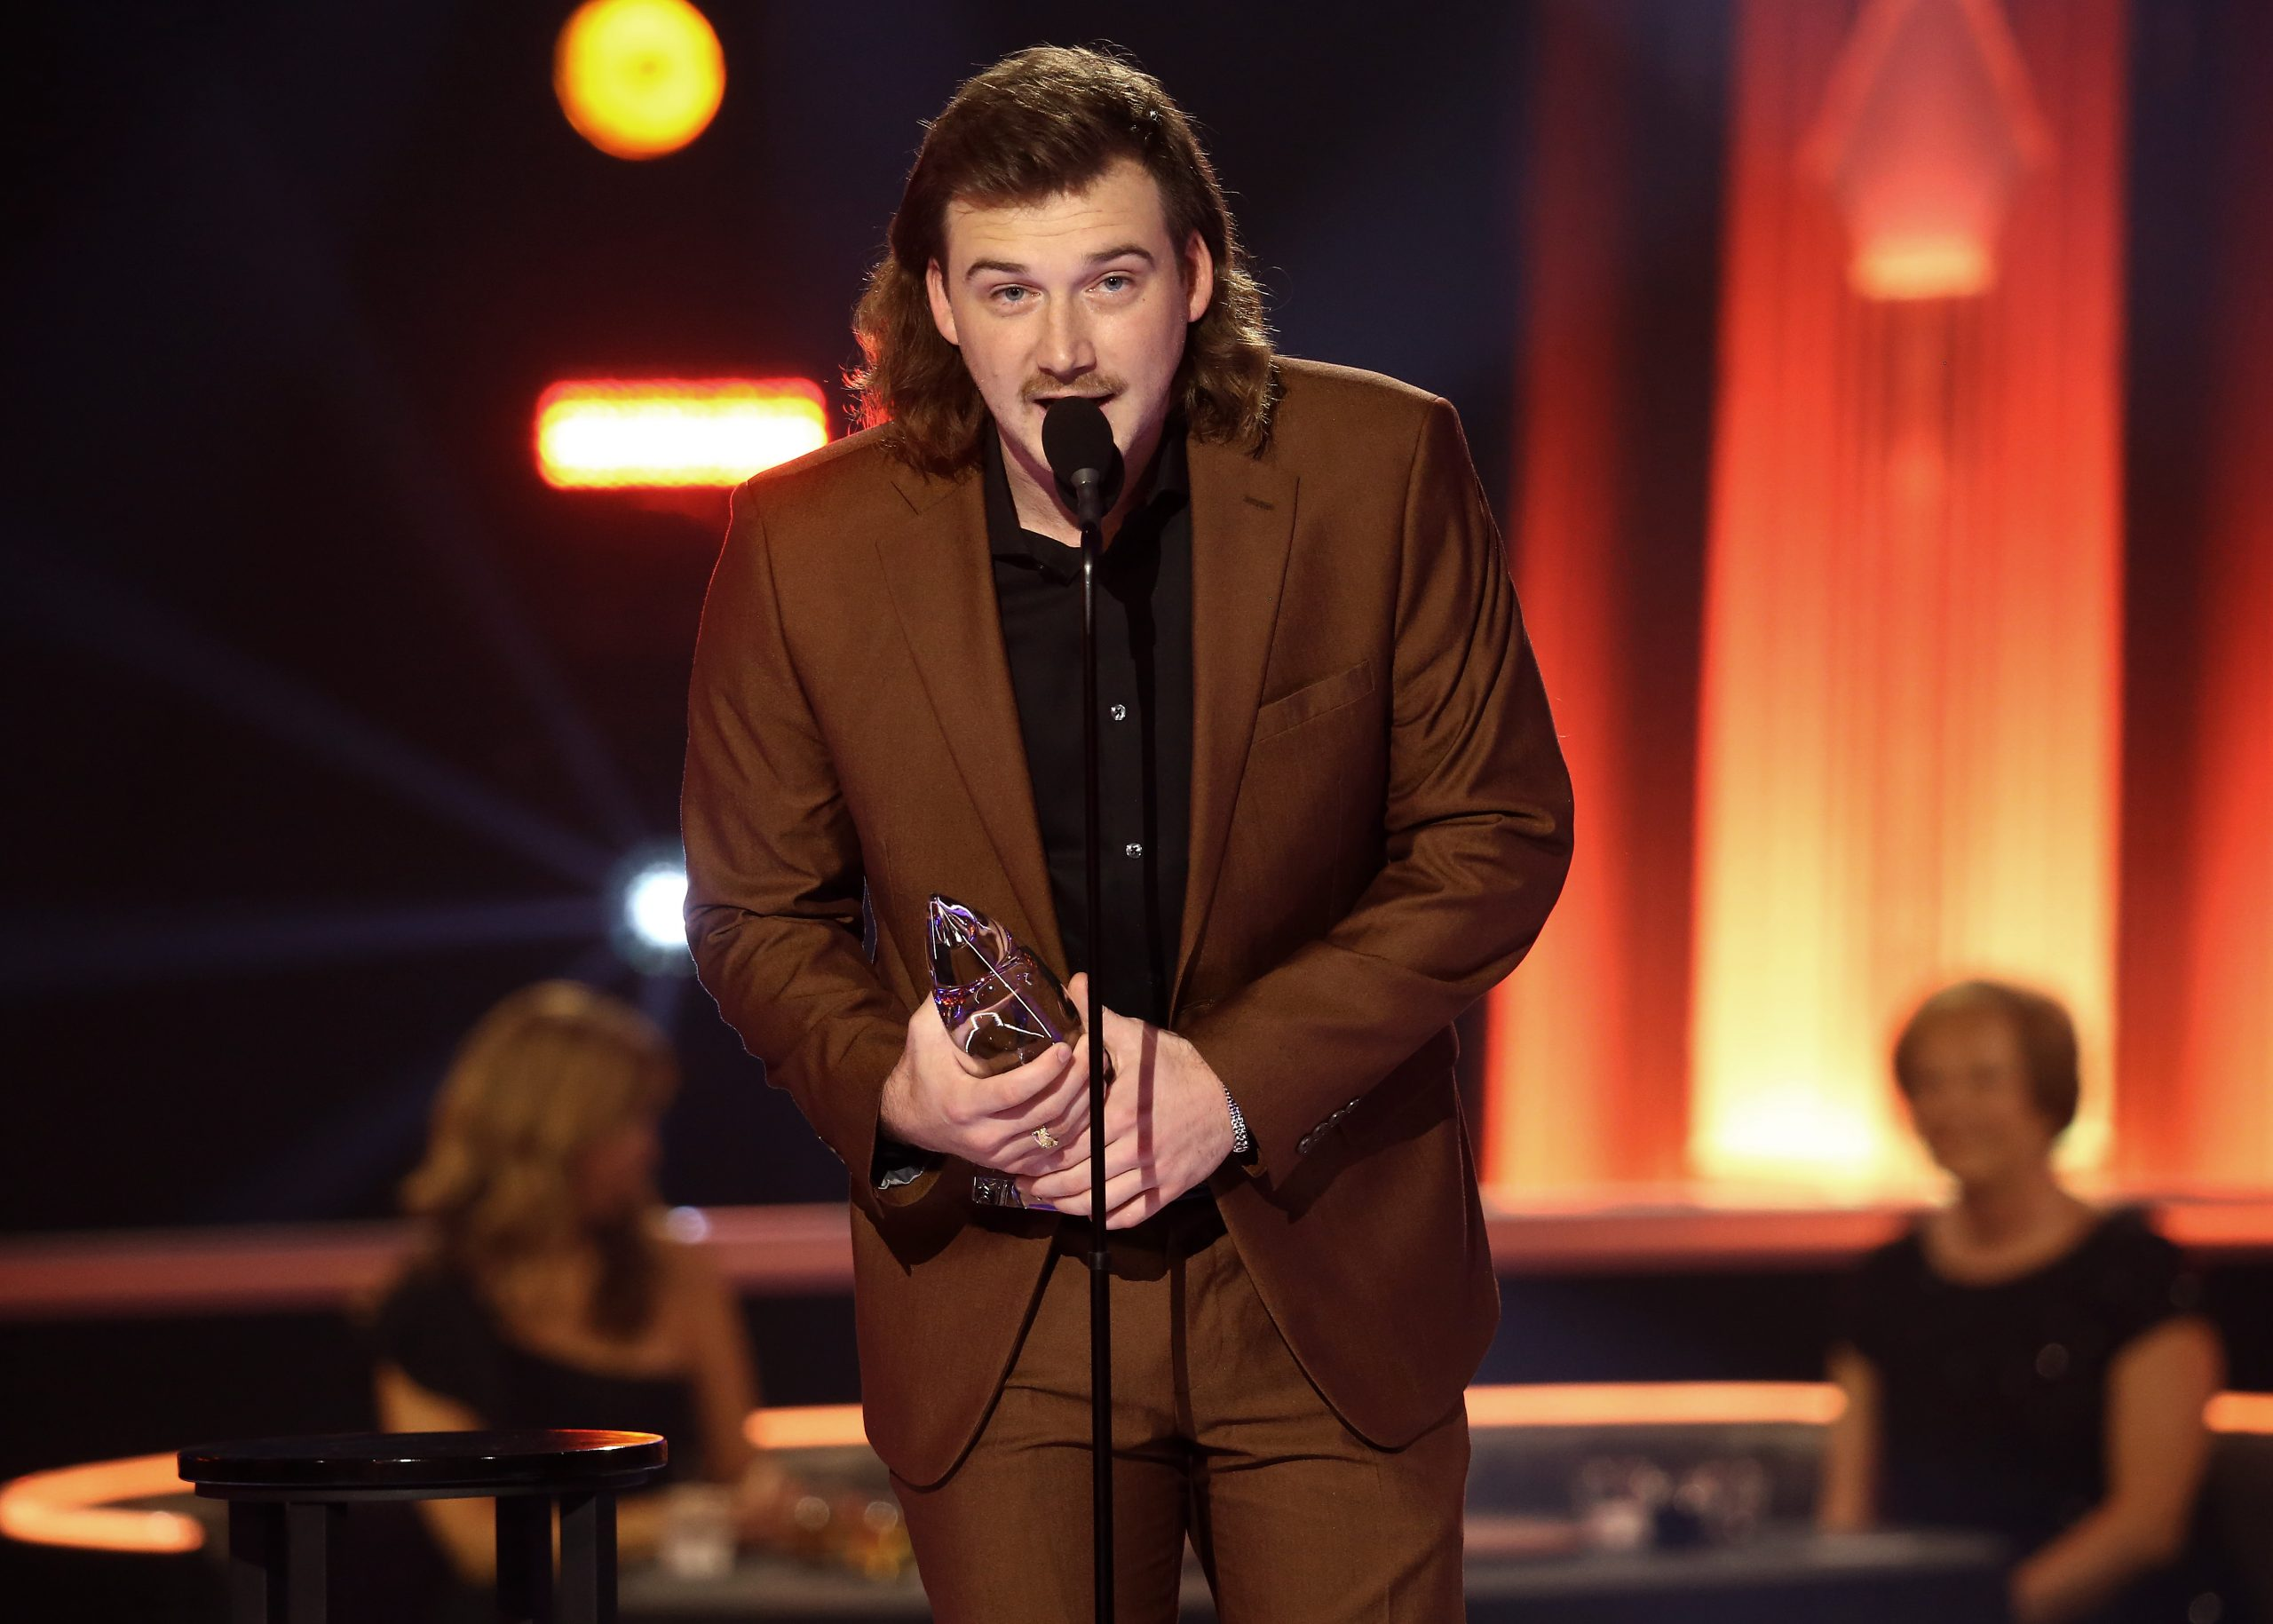 Morgan Wallen Banned From CMA Awards, Still Nominated For Album Of The Year